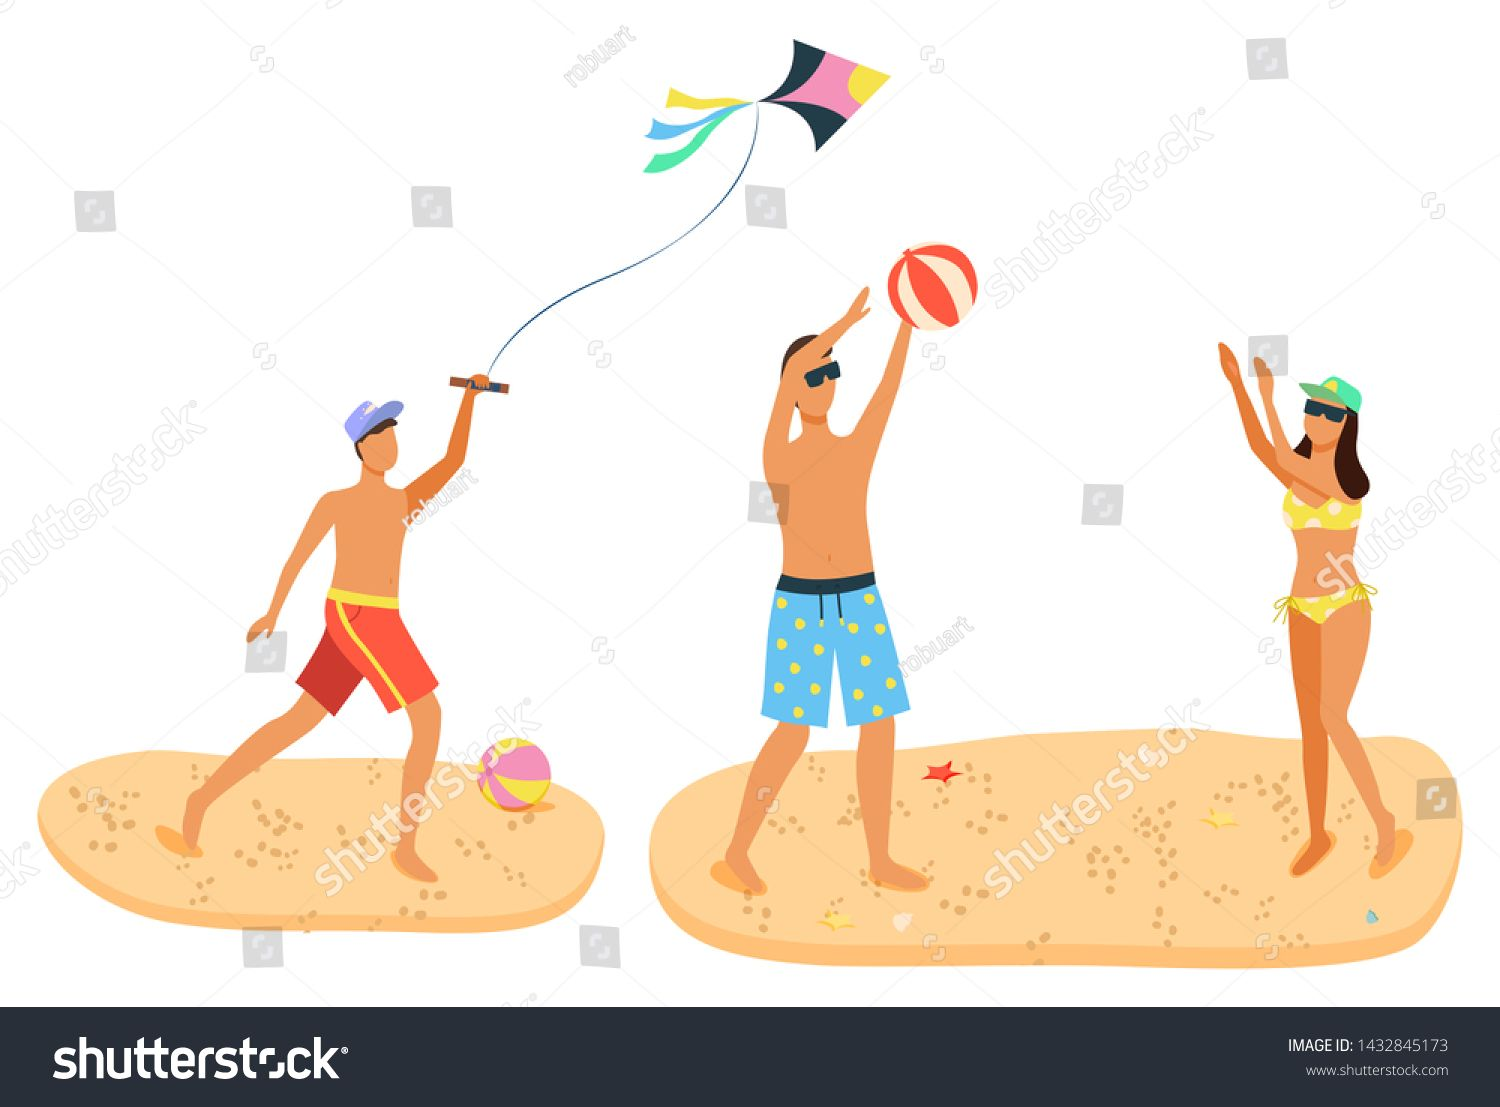 Summer Fun Recreation Activities On Sand Man And Woman In Swimsuit Playing Beach Volleyball Male With Wind Kite Cartoon People With Ball Isolated Ad Spon